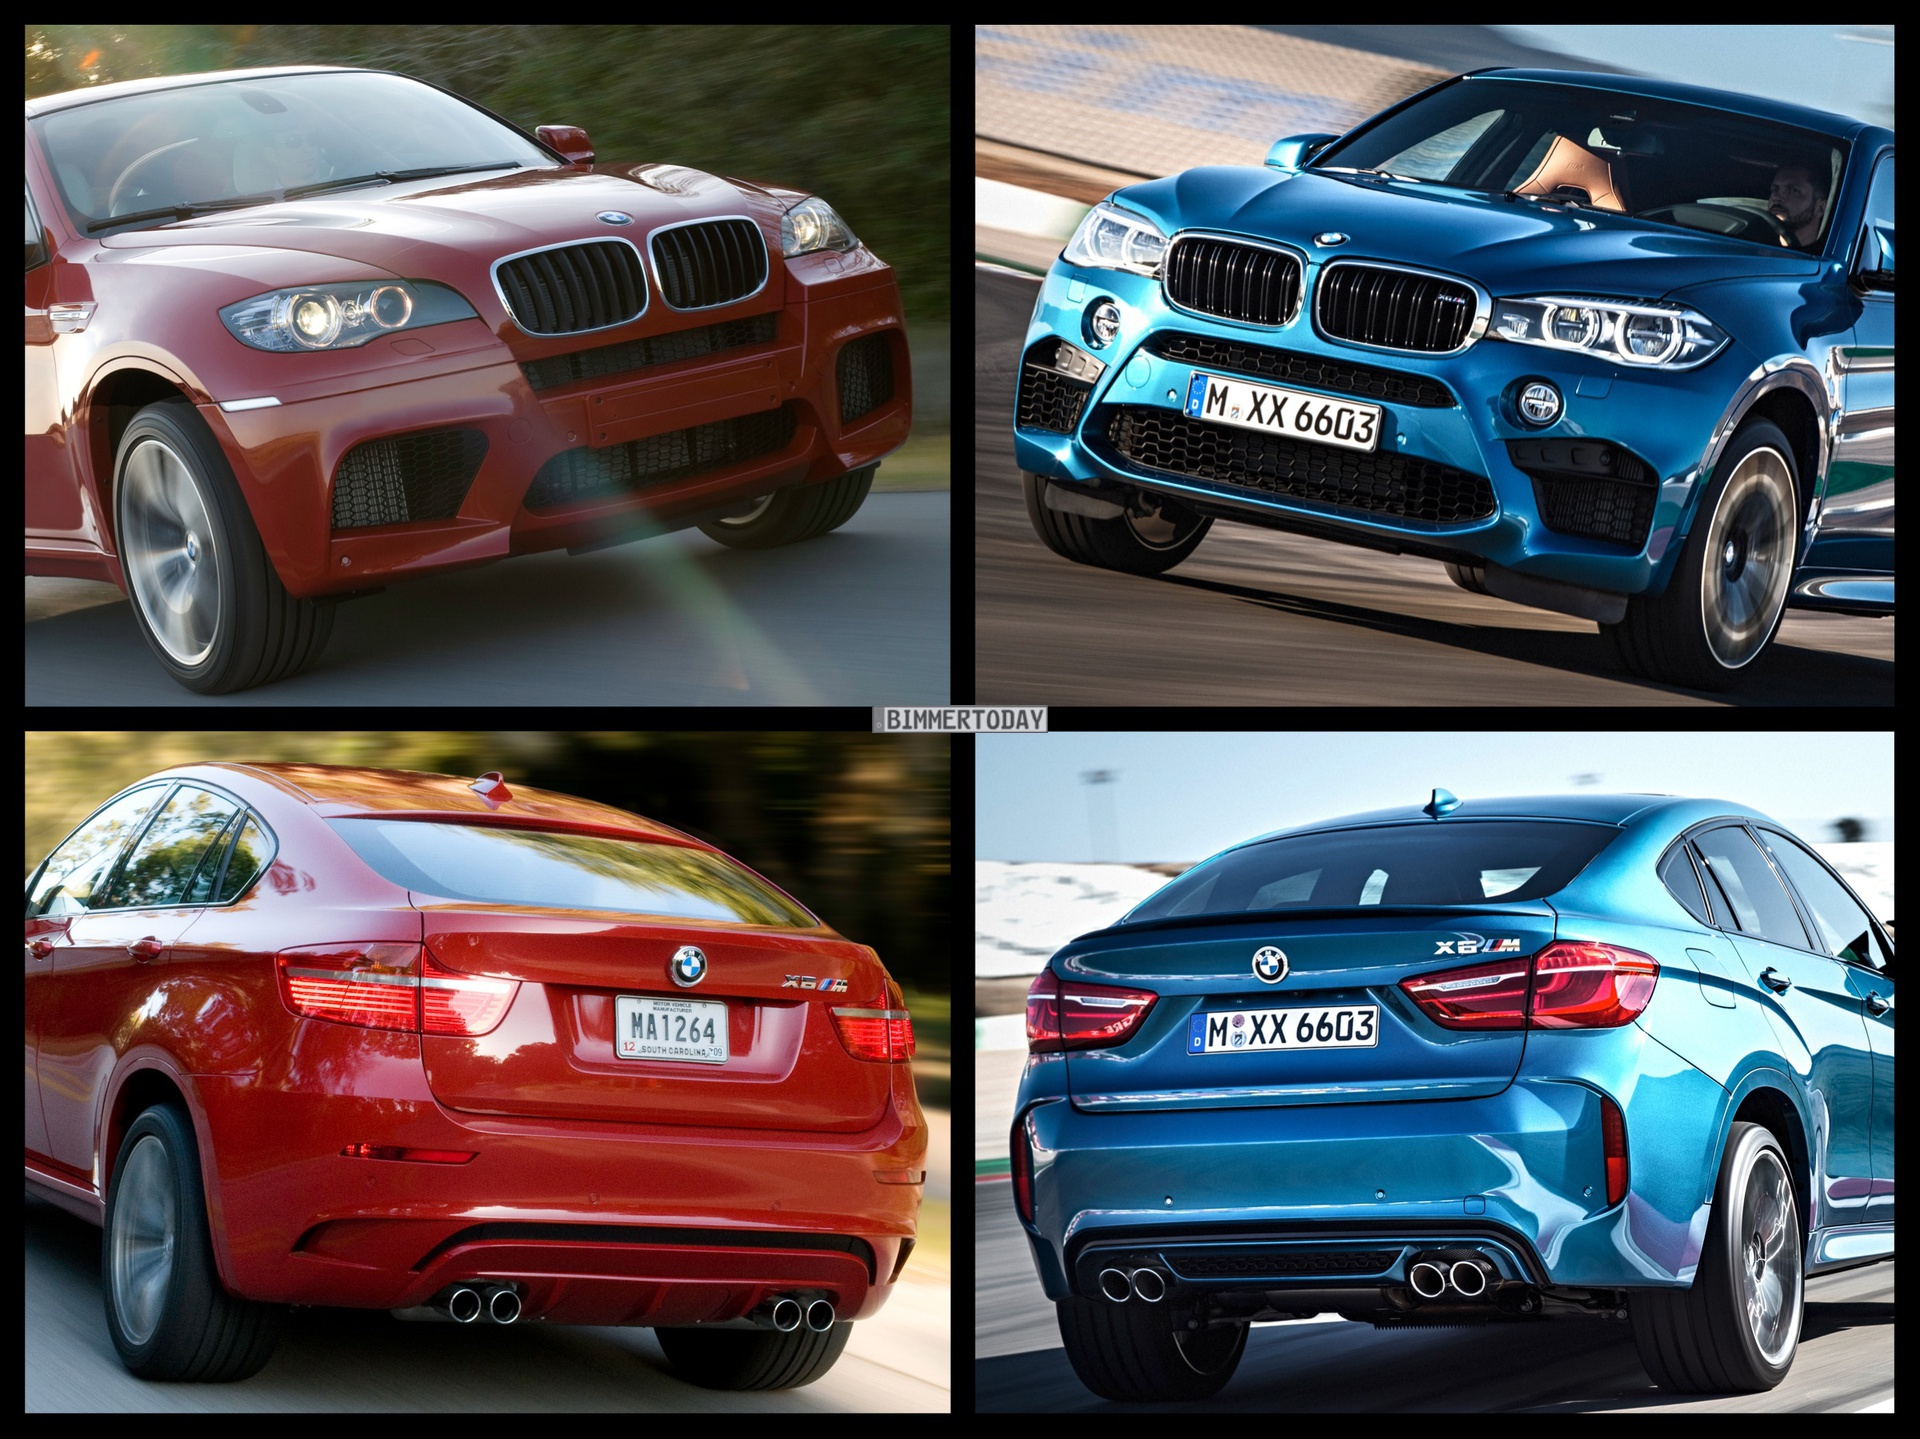 Photo Comparison F86 Bmw X6 M Vs E71 Bmw X6 M